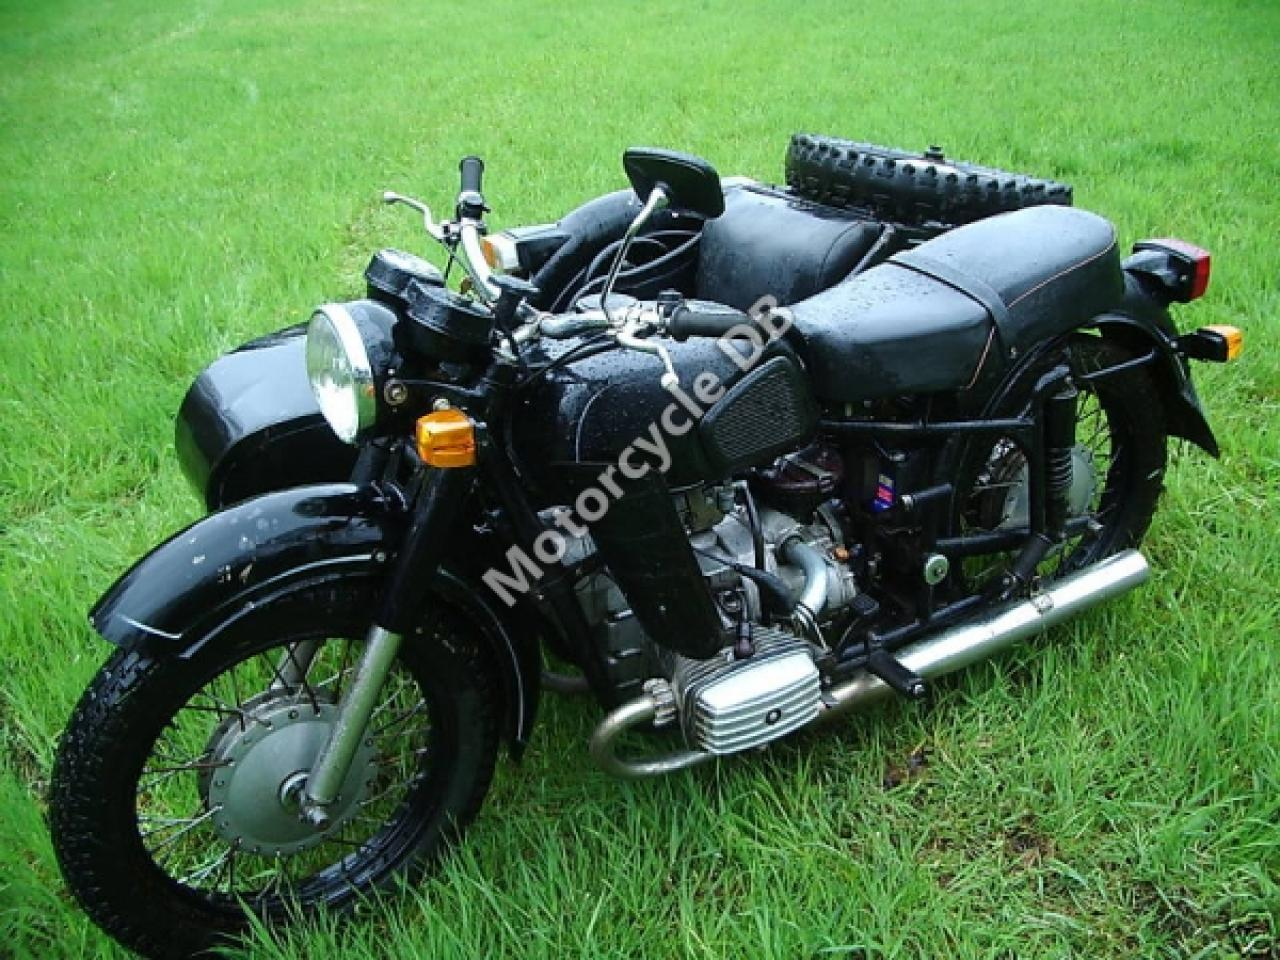 Dnepr MT 10 with sidecar 1983 images #95579